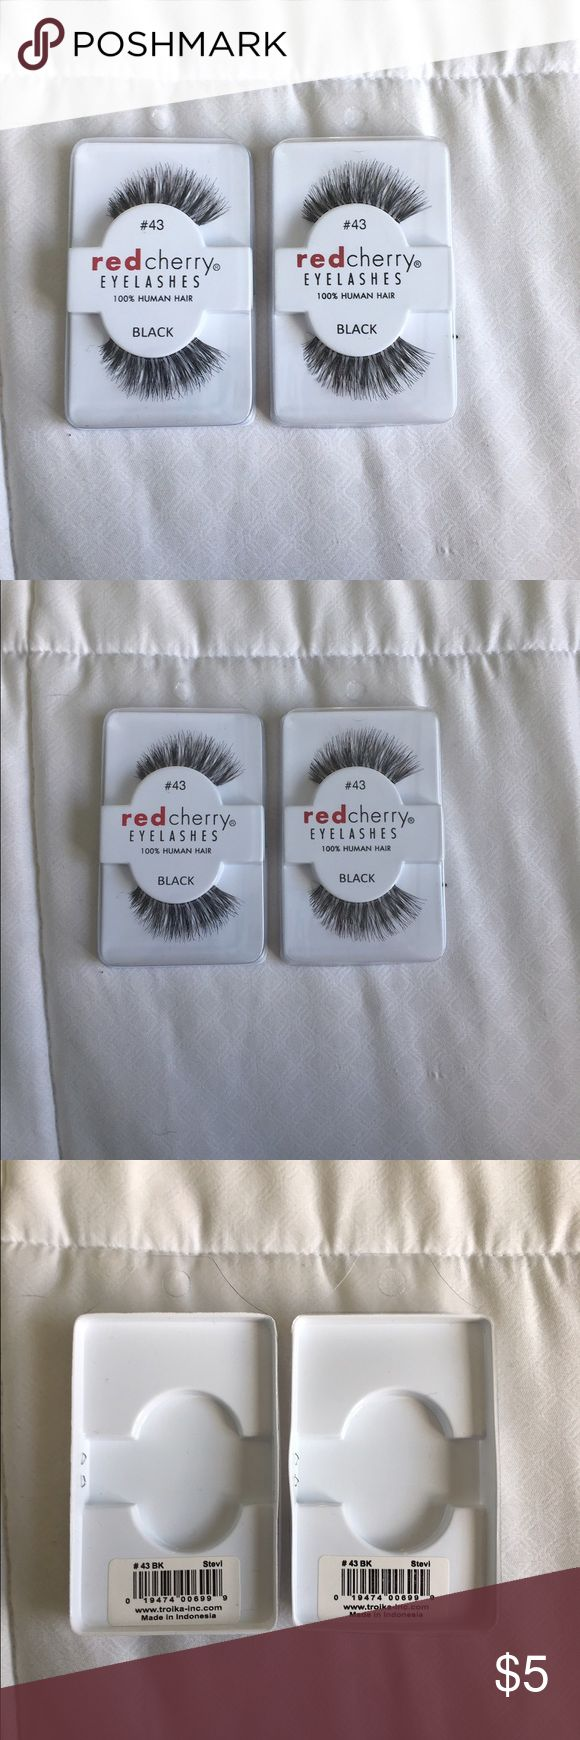 Red Cherry Eyelashes Brand new Red Cherry Eyelashes #43 in perfect condition. Never taken out of the package or used! red cherry Makeup False Eyelashes